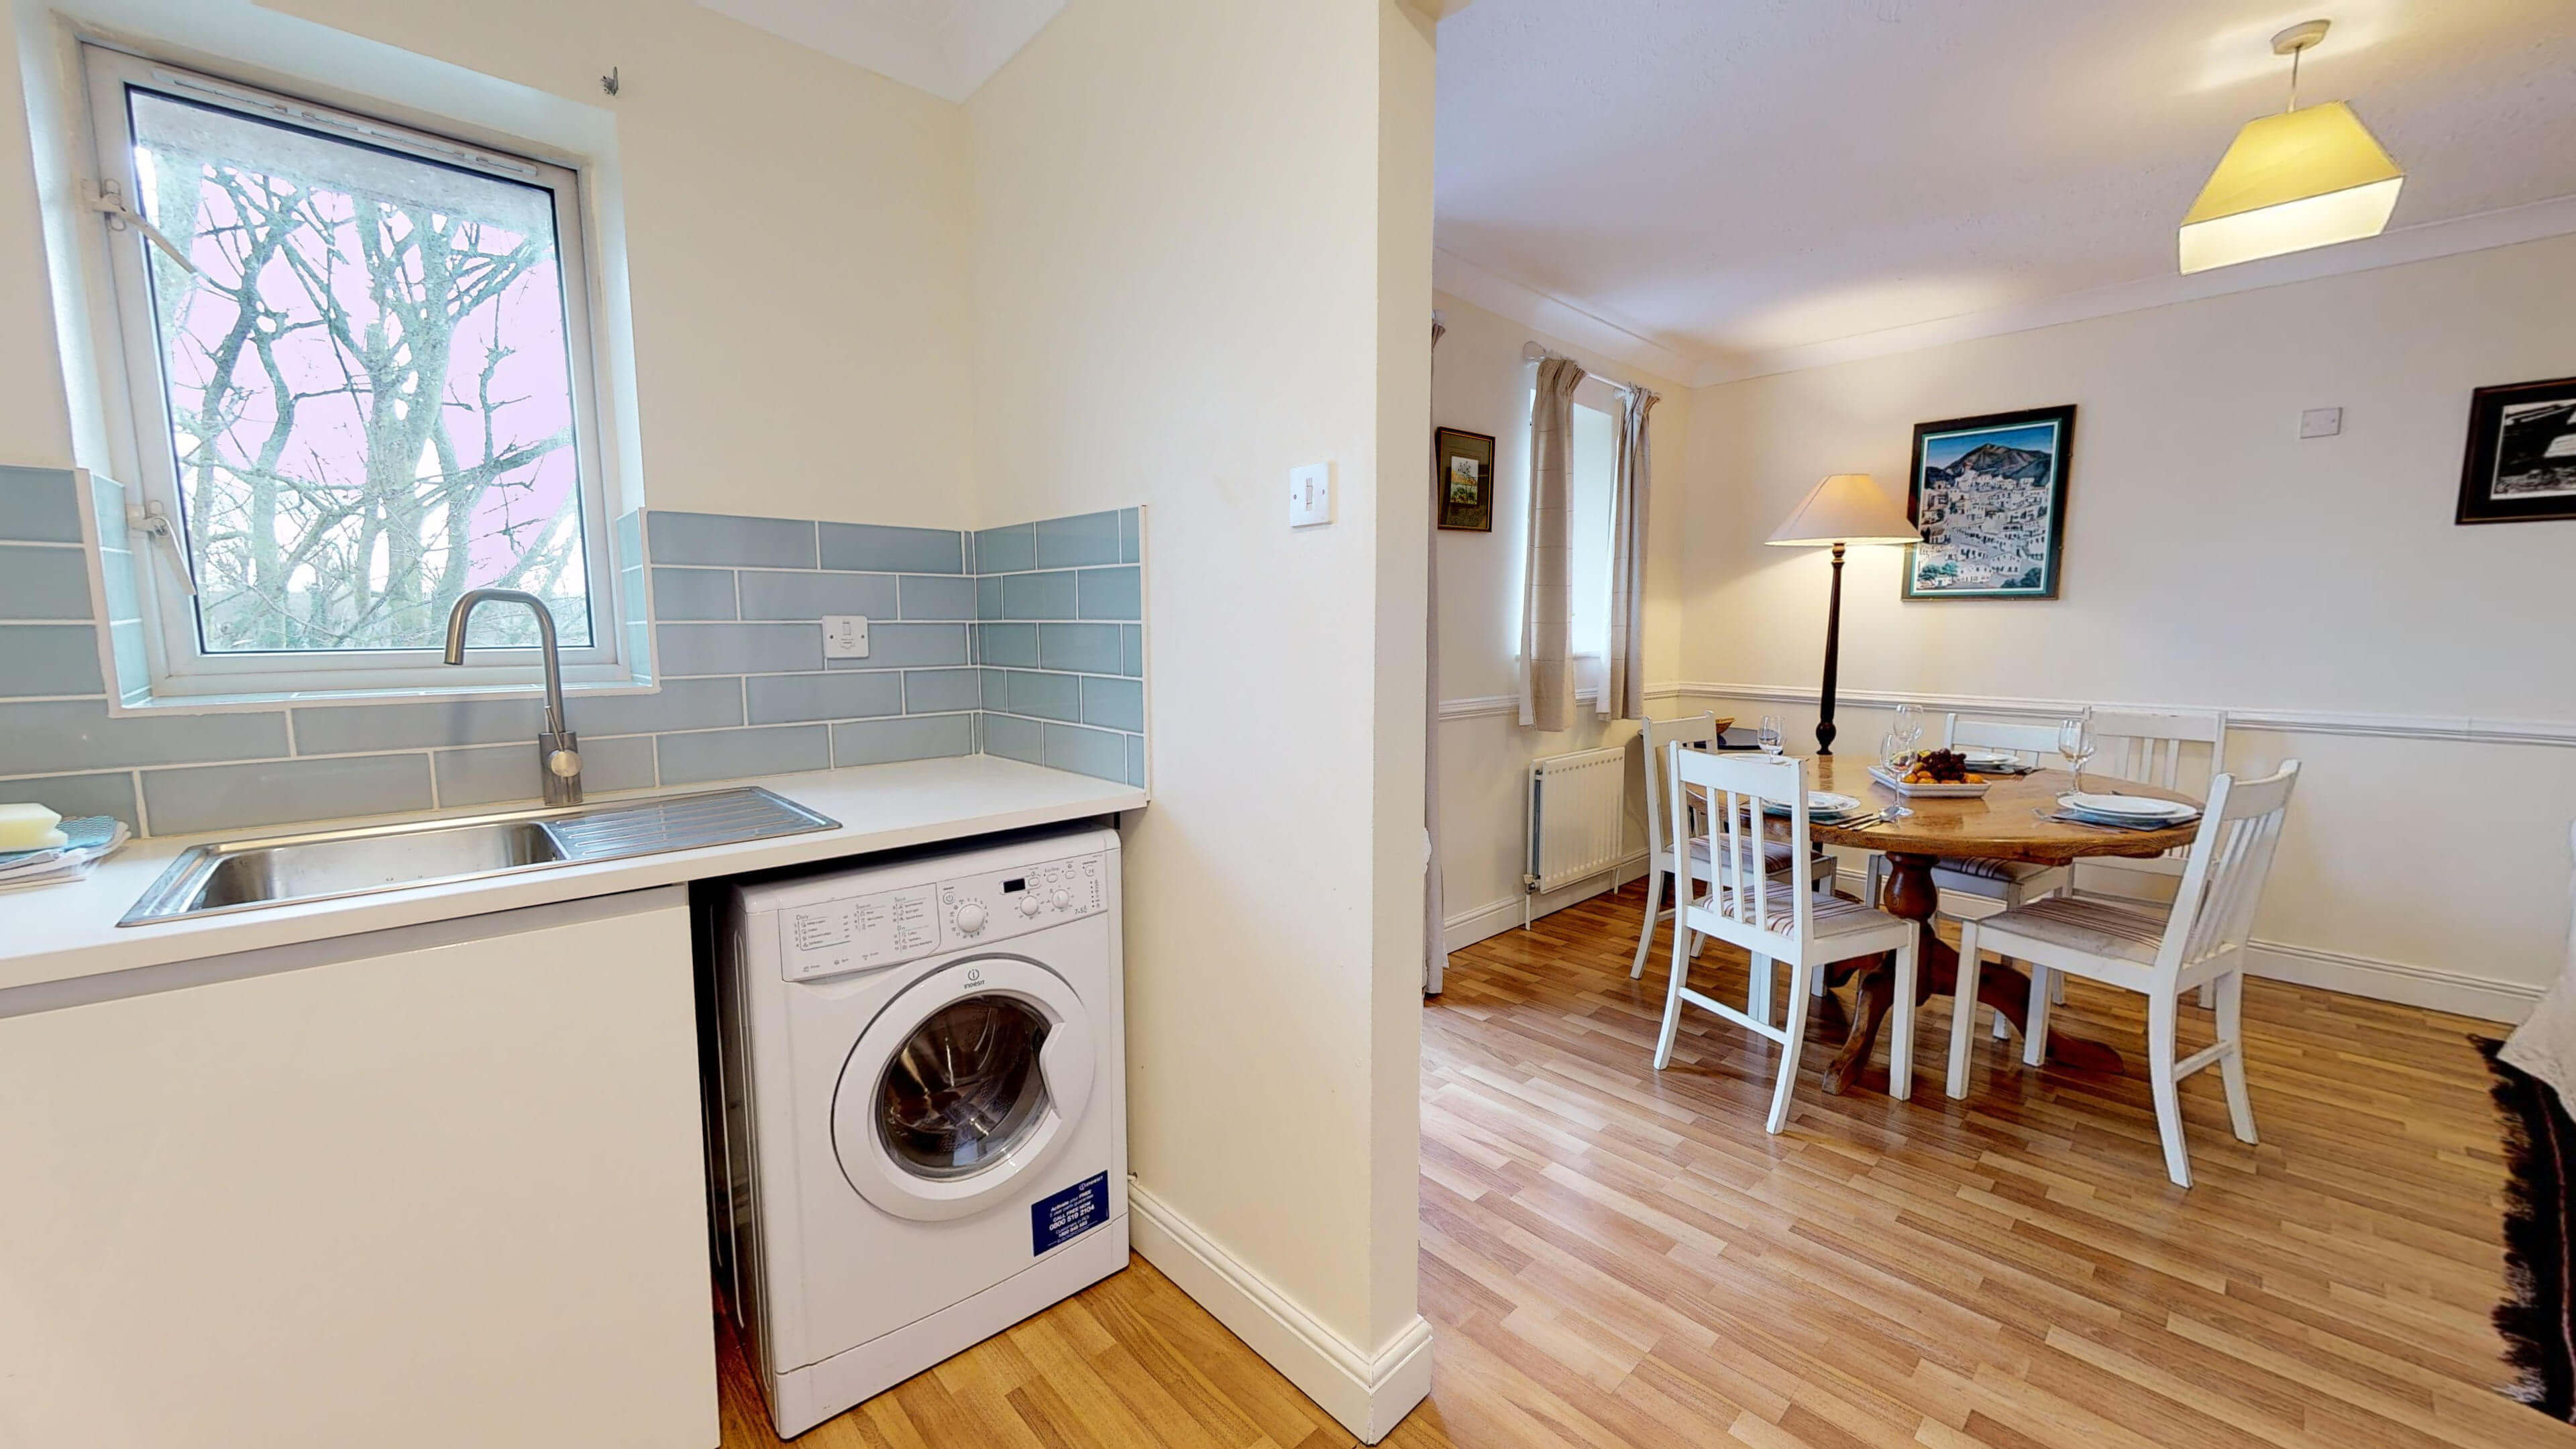 Millbank Oxford City Centre Short Stay Apartment Sleeps 4 Kitchen Dining